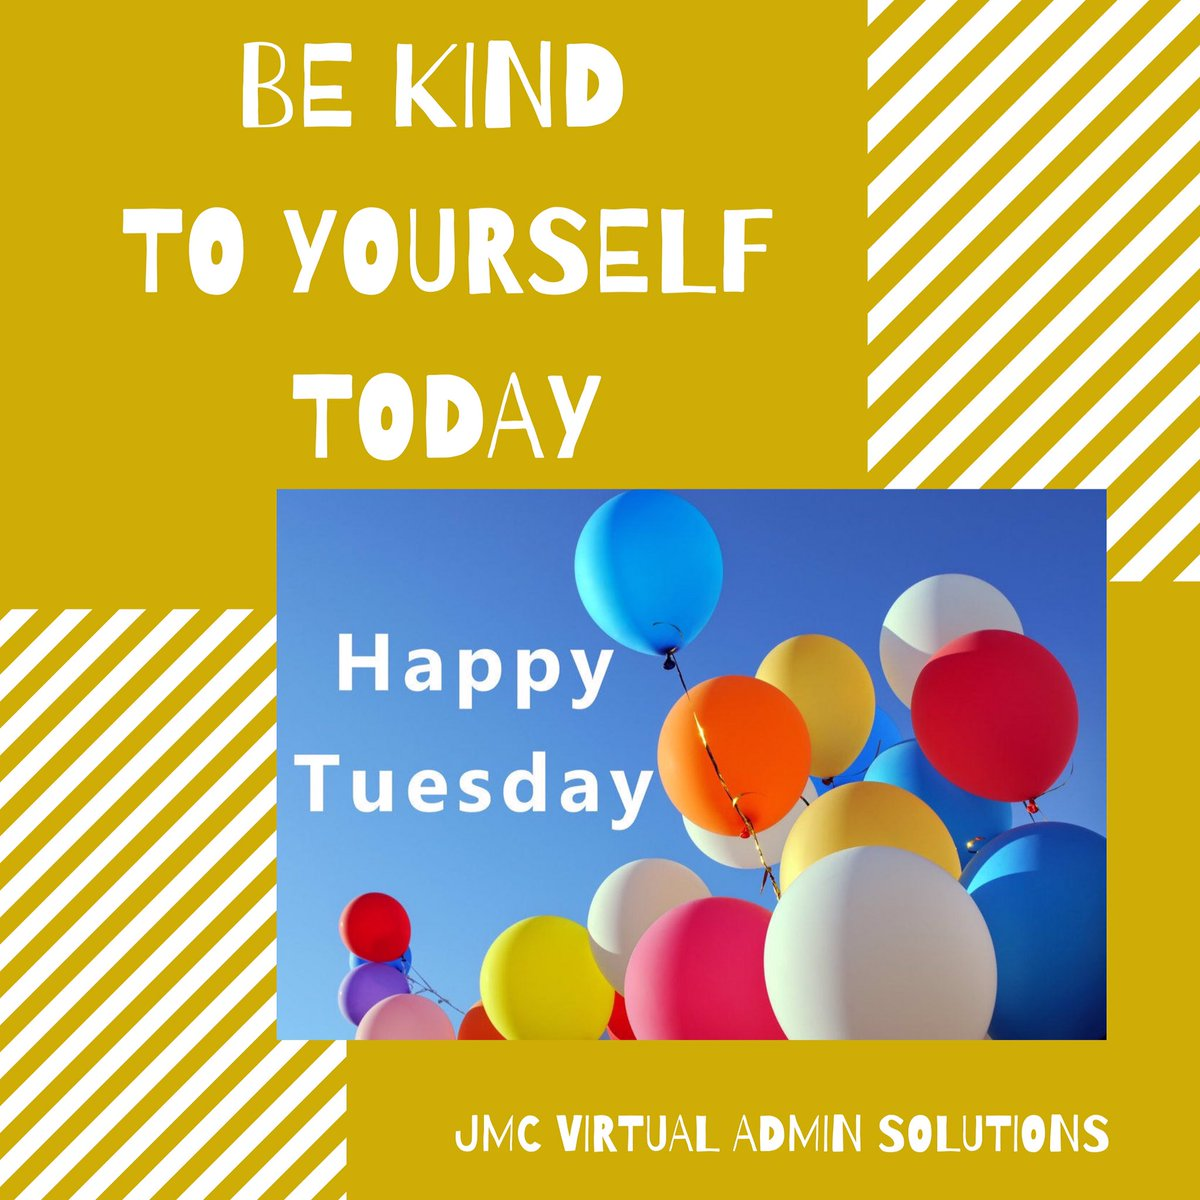 No-one will ever look after you like YOU can. It's so true what they say positive thoughts, positive outlook, positive mind!  #fridayvibes #positivevibes #positivethinking #jmcvirtualadminsolutions #virtualadmin  #outsourcingservices #tuesdayquotes #kindtoyourself